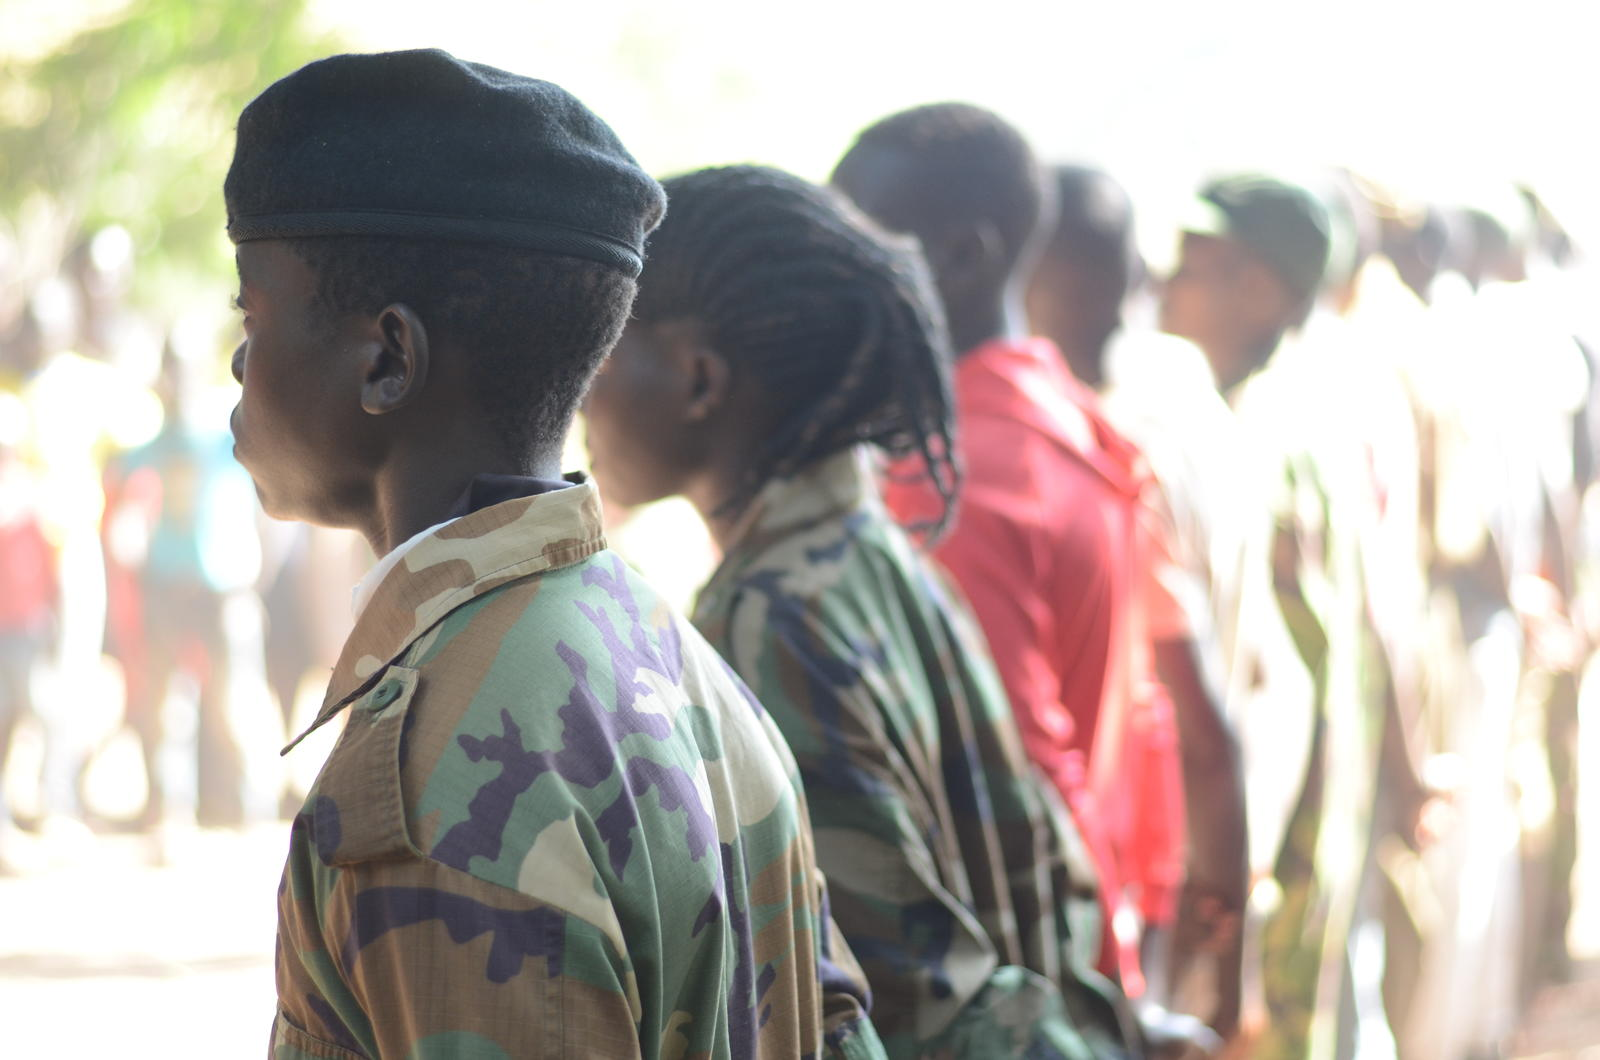 The U.N. estimates there are still 19,000 child soldiers in South Sudan. Hundreds of child soldiers were released by armed groups in January 2018. World Vision has supported them as they into community life and connect with their families. The boys and girls receive counseling, psychosocial support, education, and jobs skills training from World Vision.